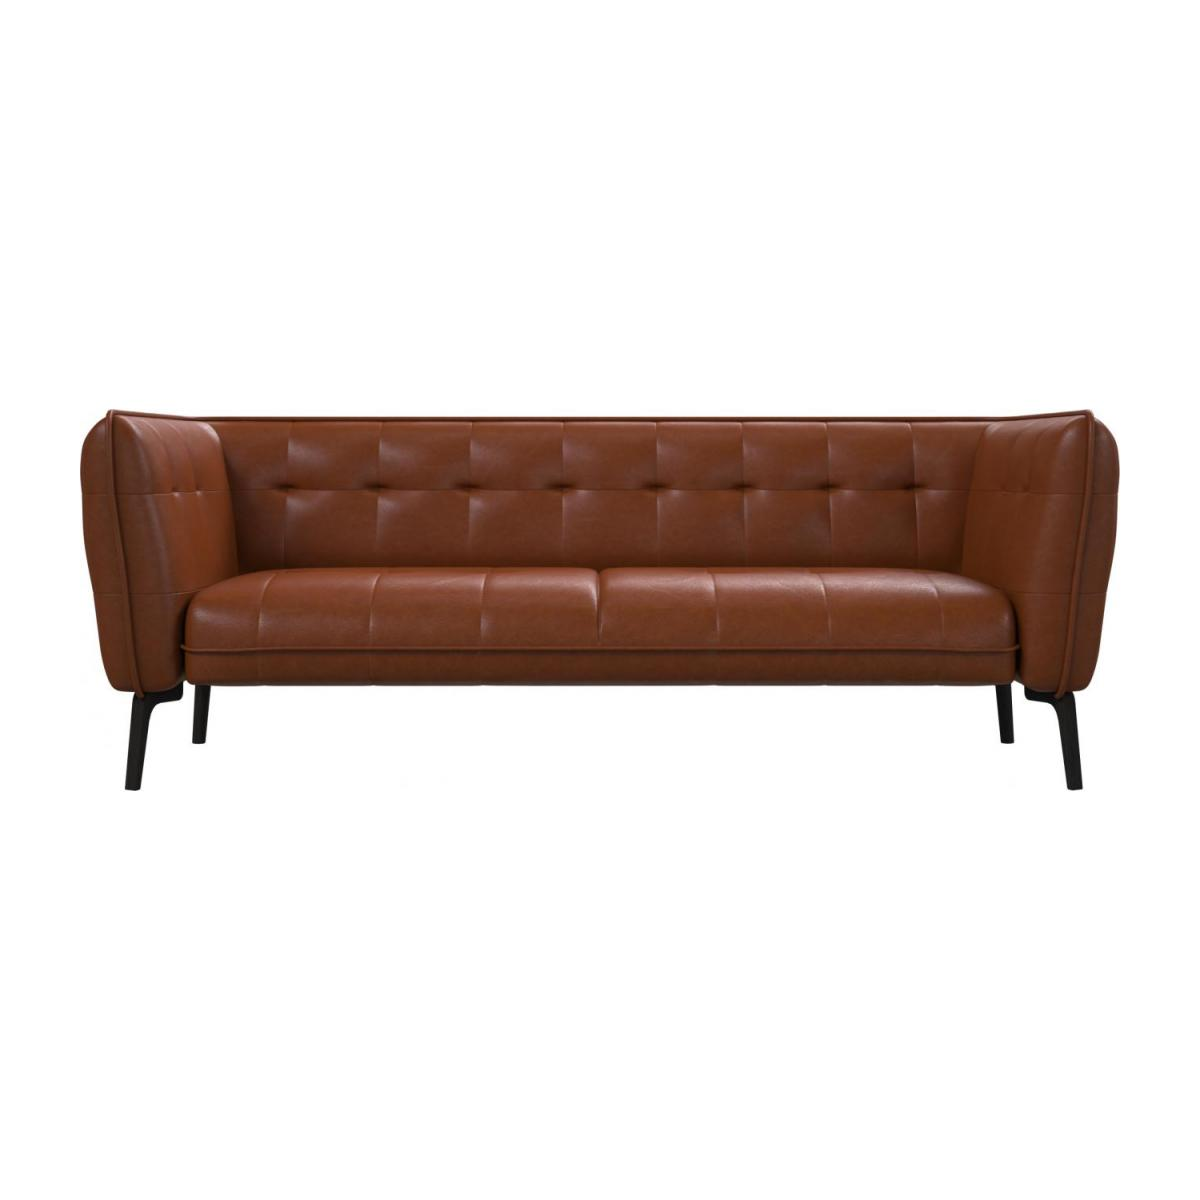 3 seater sofa in Vintage aniline leather, old chestnut and dark feet n°2